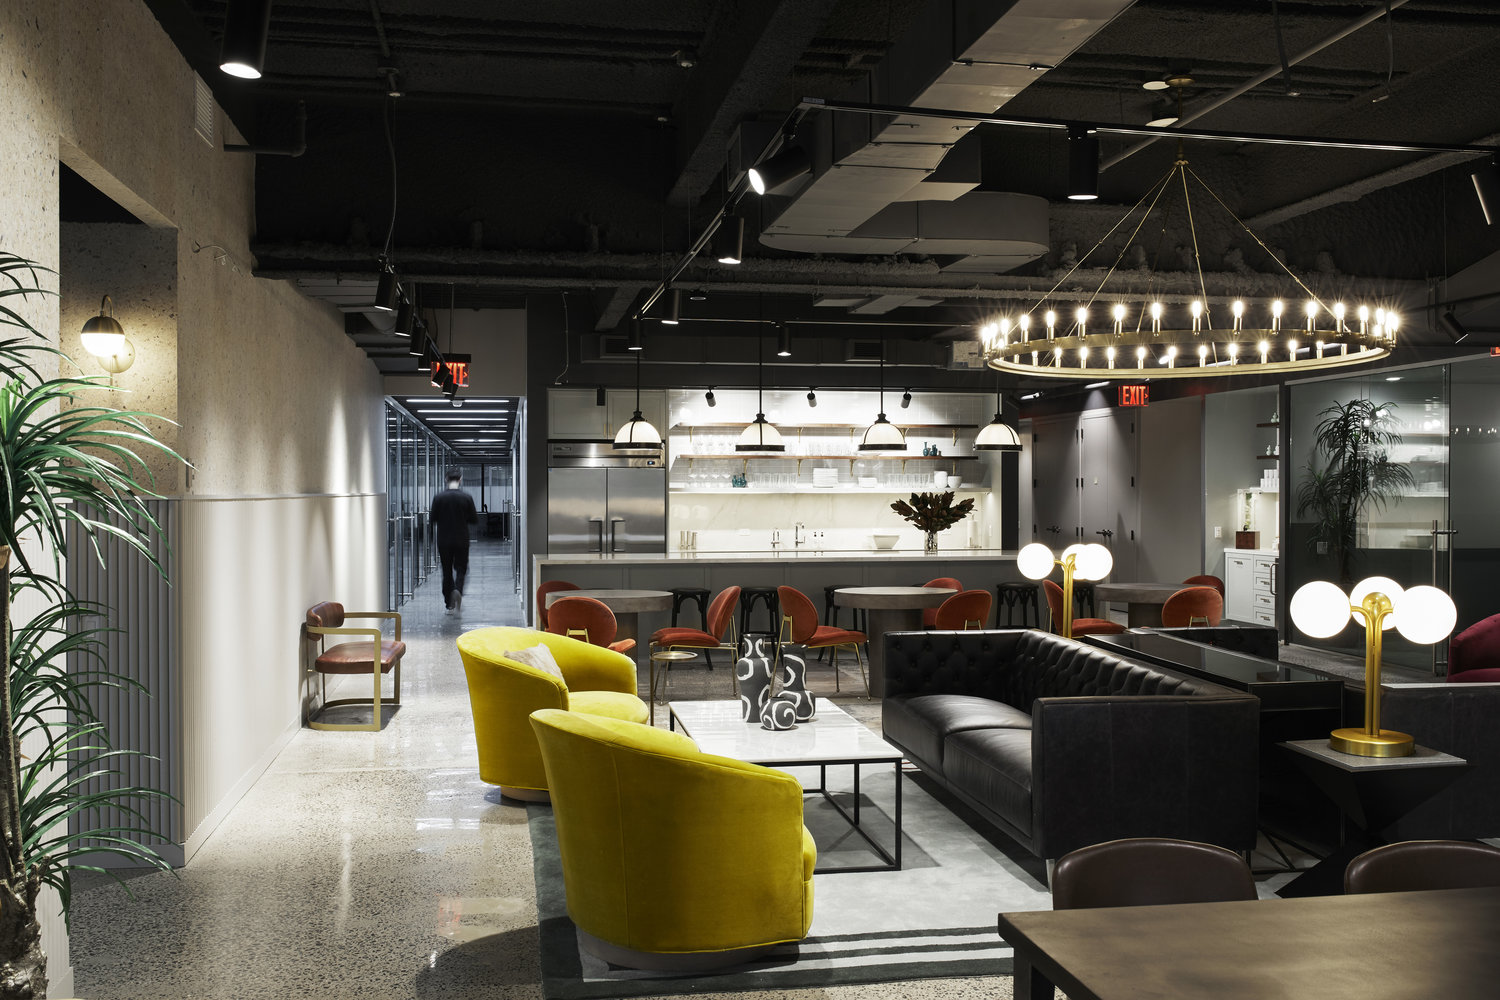 common area of coworking space with small kitchen, sofas, tables and chairs